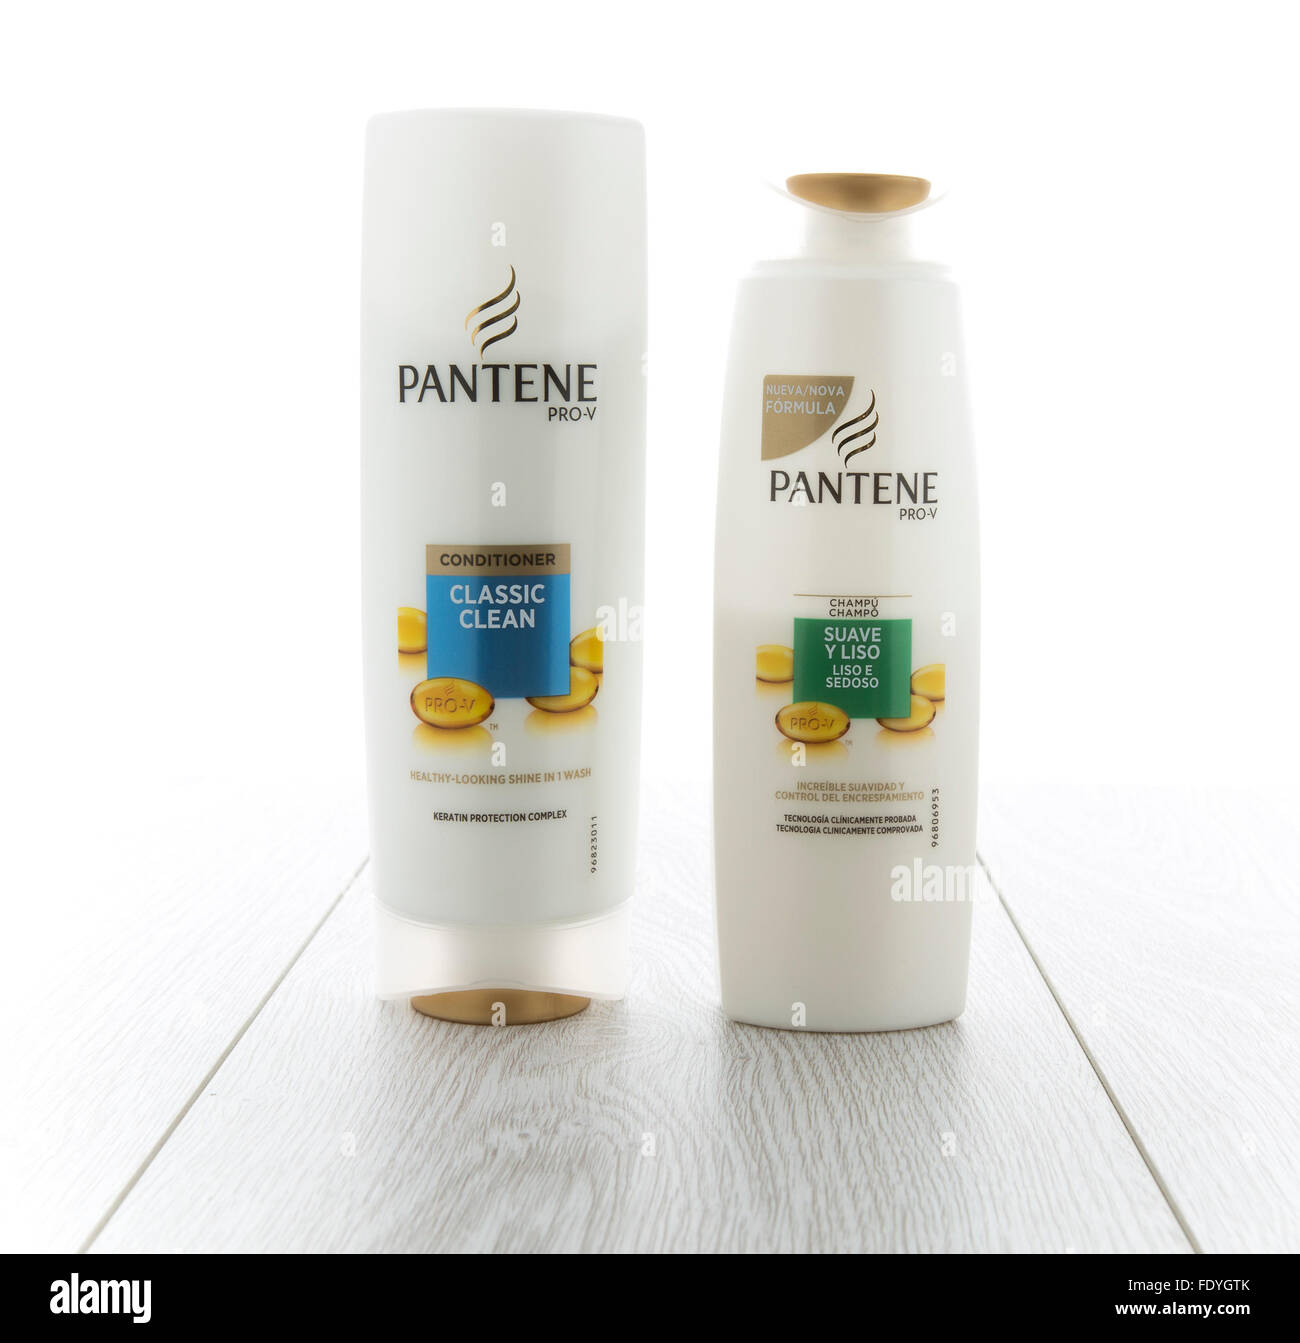 Two bottles of Pantene Hair Care Products. Introduced in Europe in 1947 by Hoffmann-La Roche - Stock Image